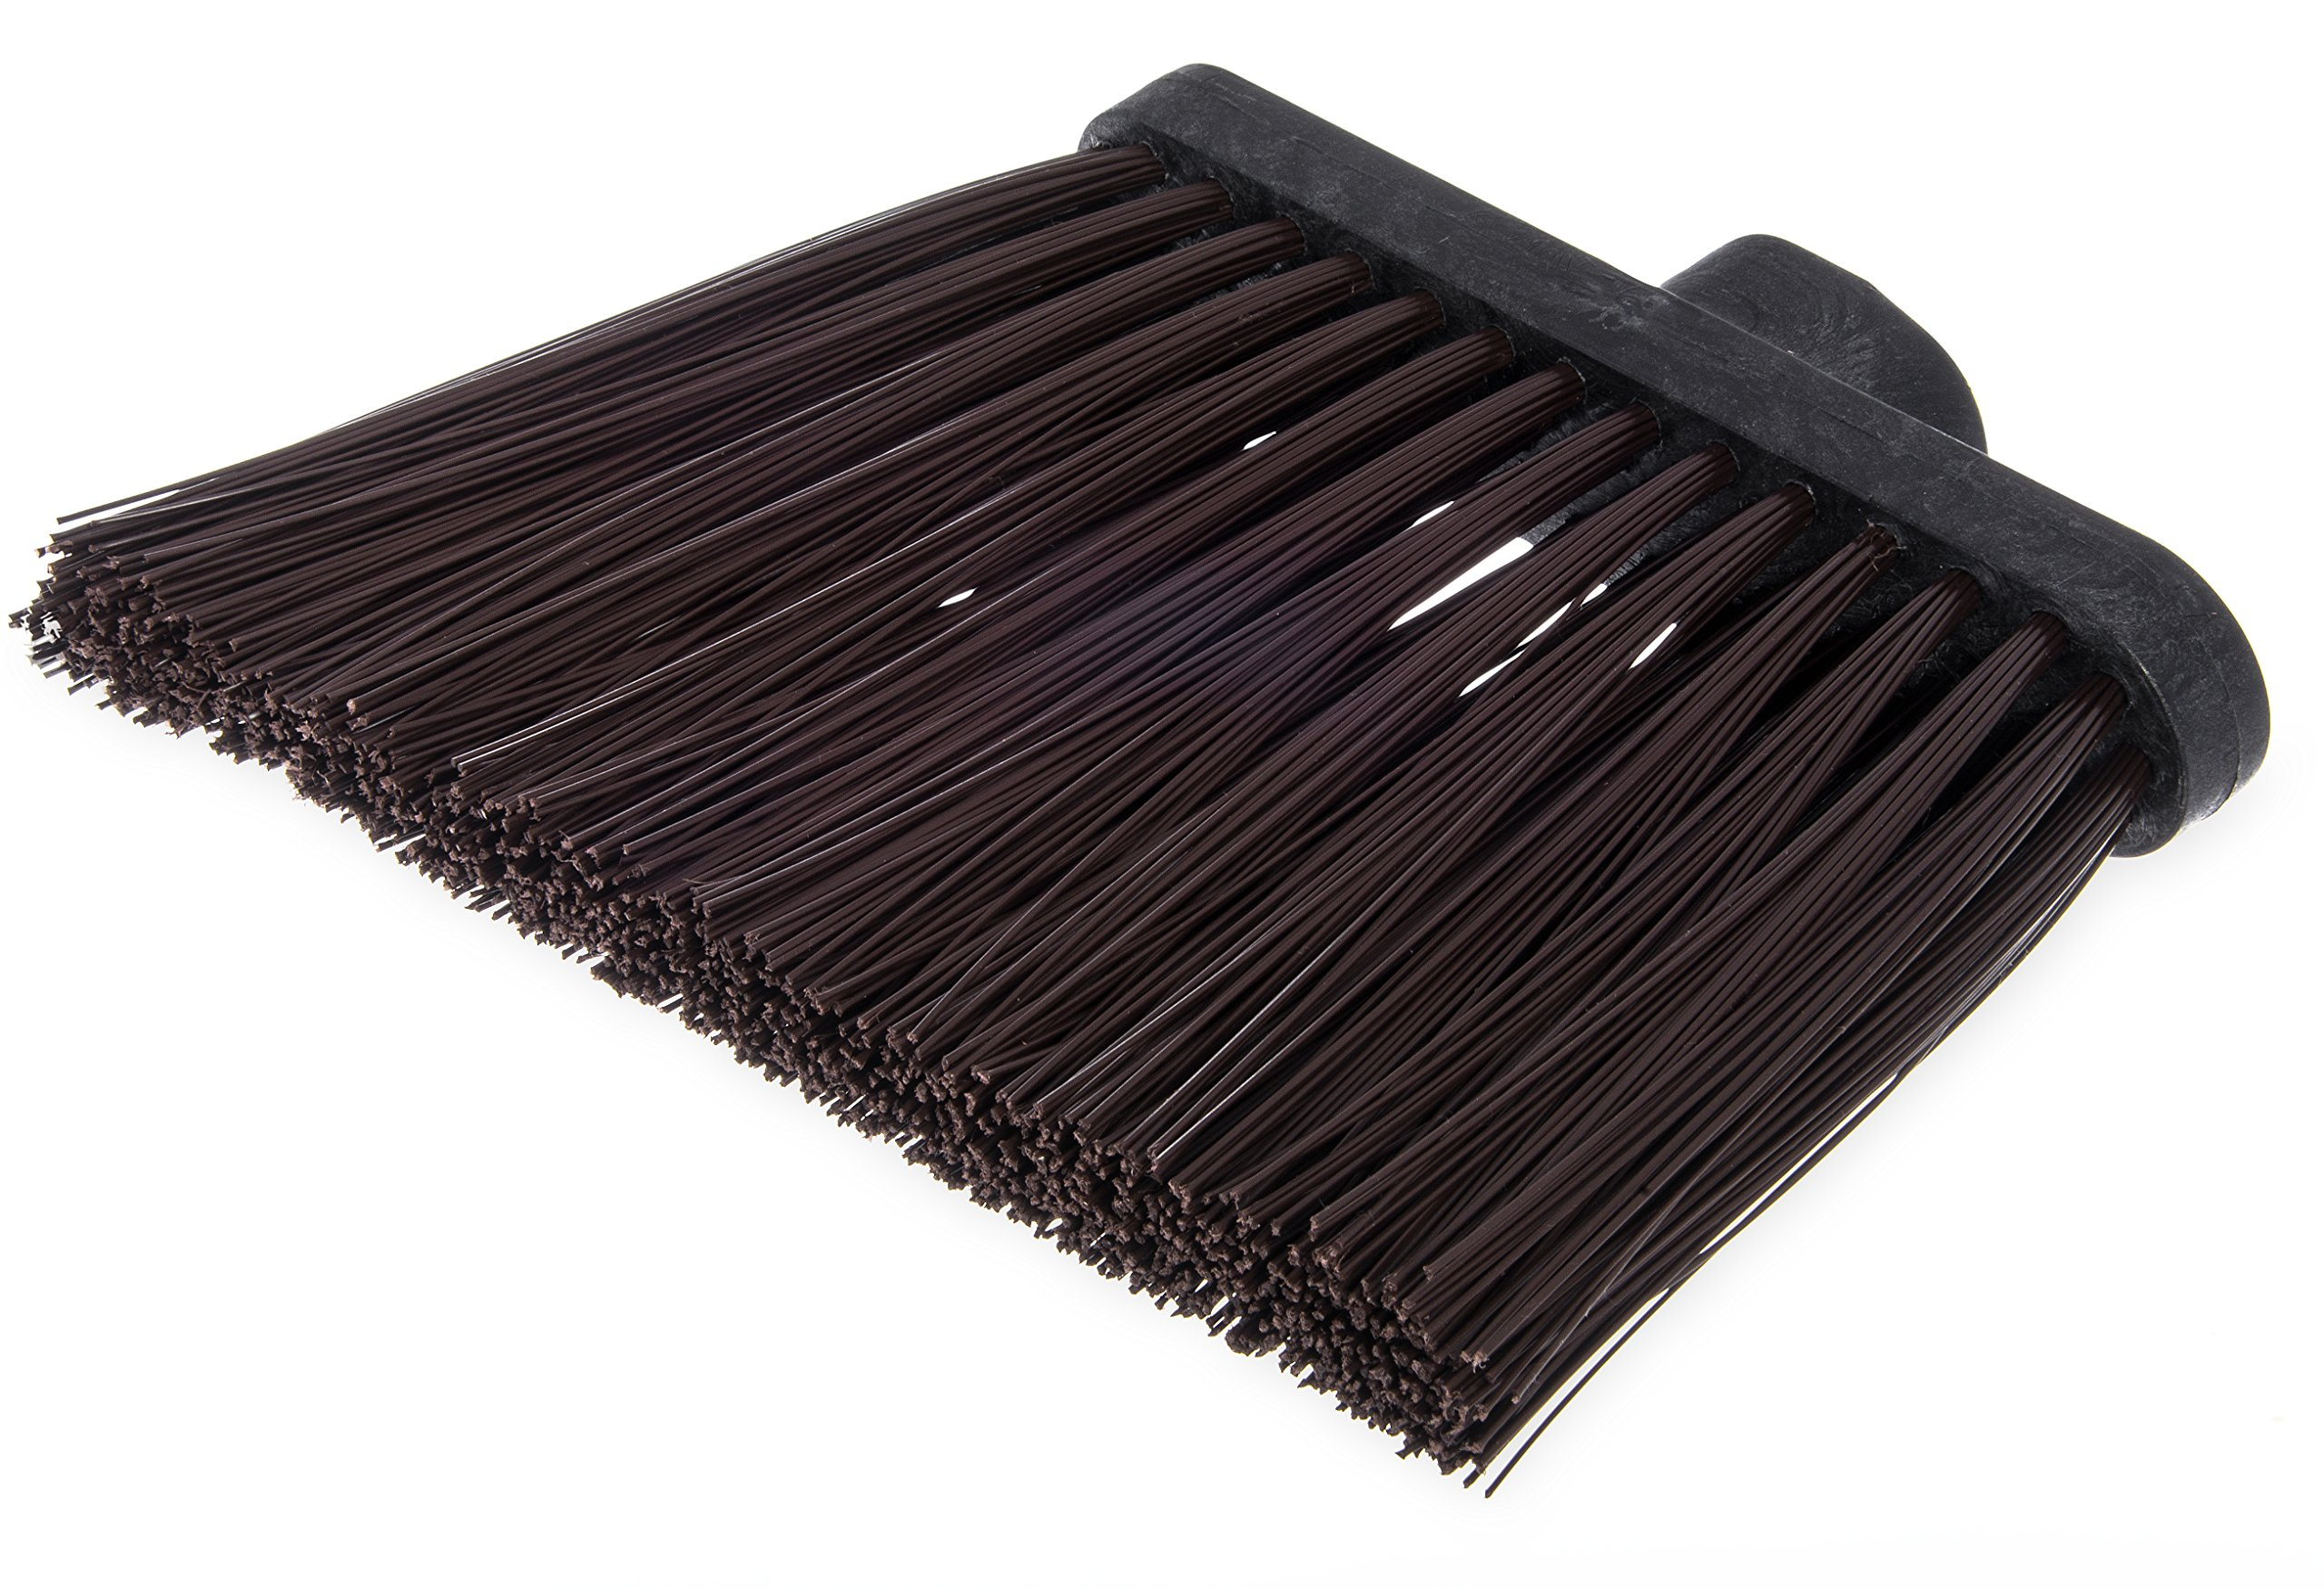 Carlisle 3686801 Duo-Sweep UnFlagged Angle Broom Head, 8'', Brown (Pack of 12) by Carlisle